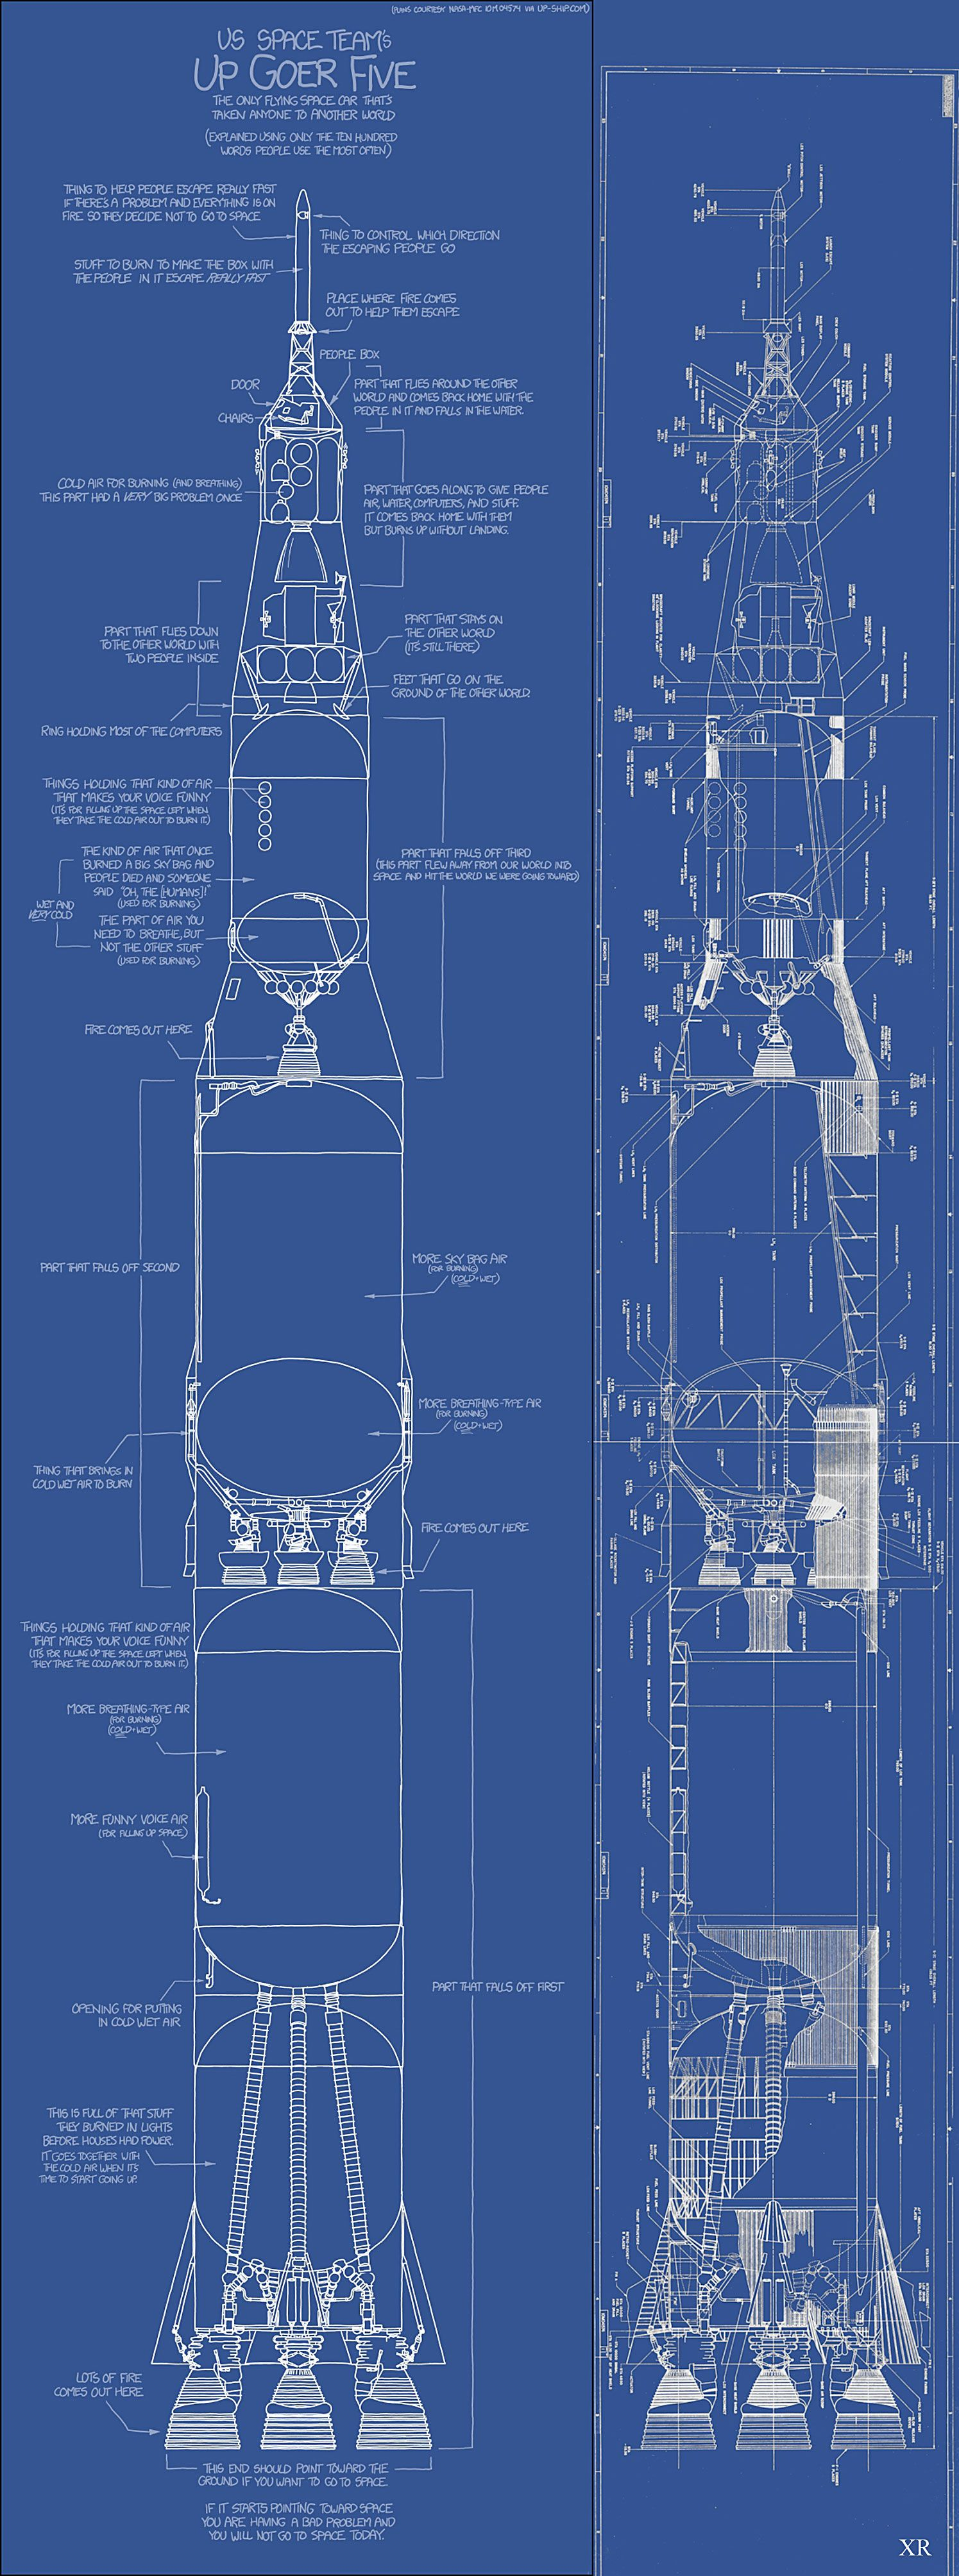 Rocket Blueprint | Vintage Science, Space, Technology ...